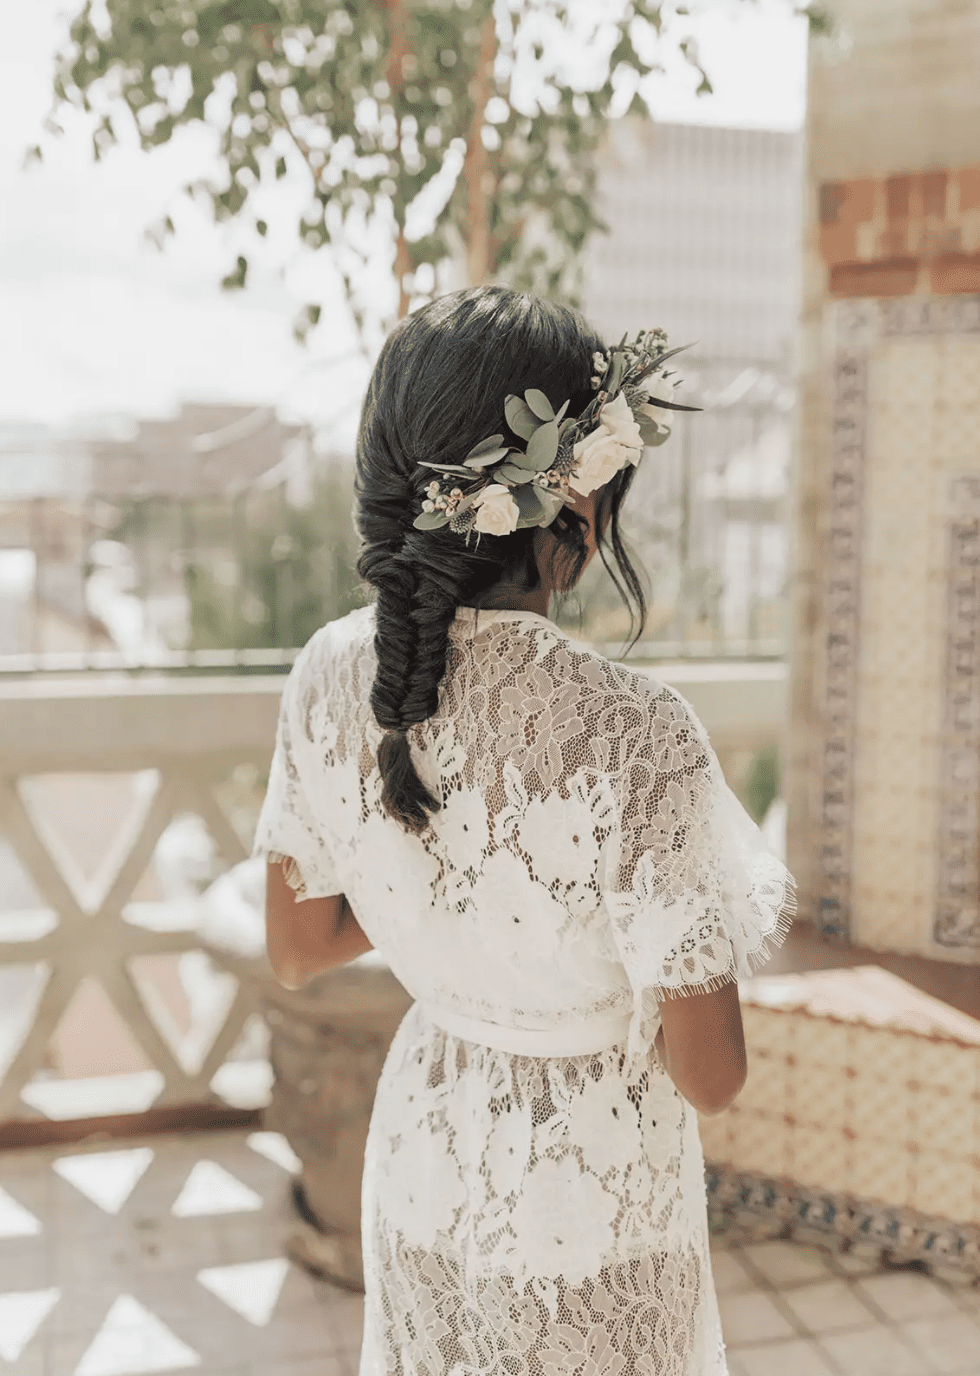 Fishtail braid with floral adornment